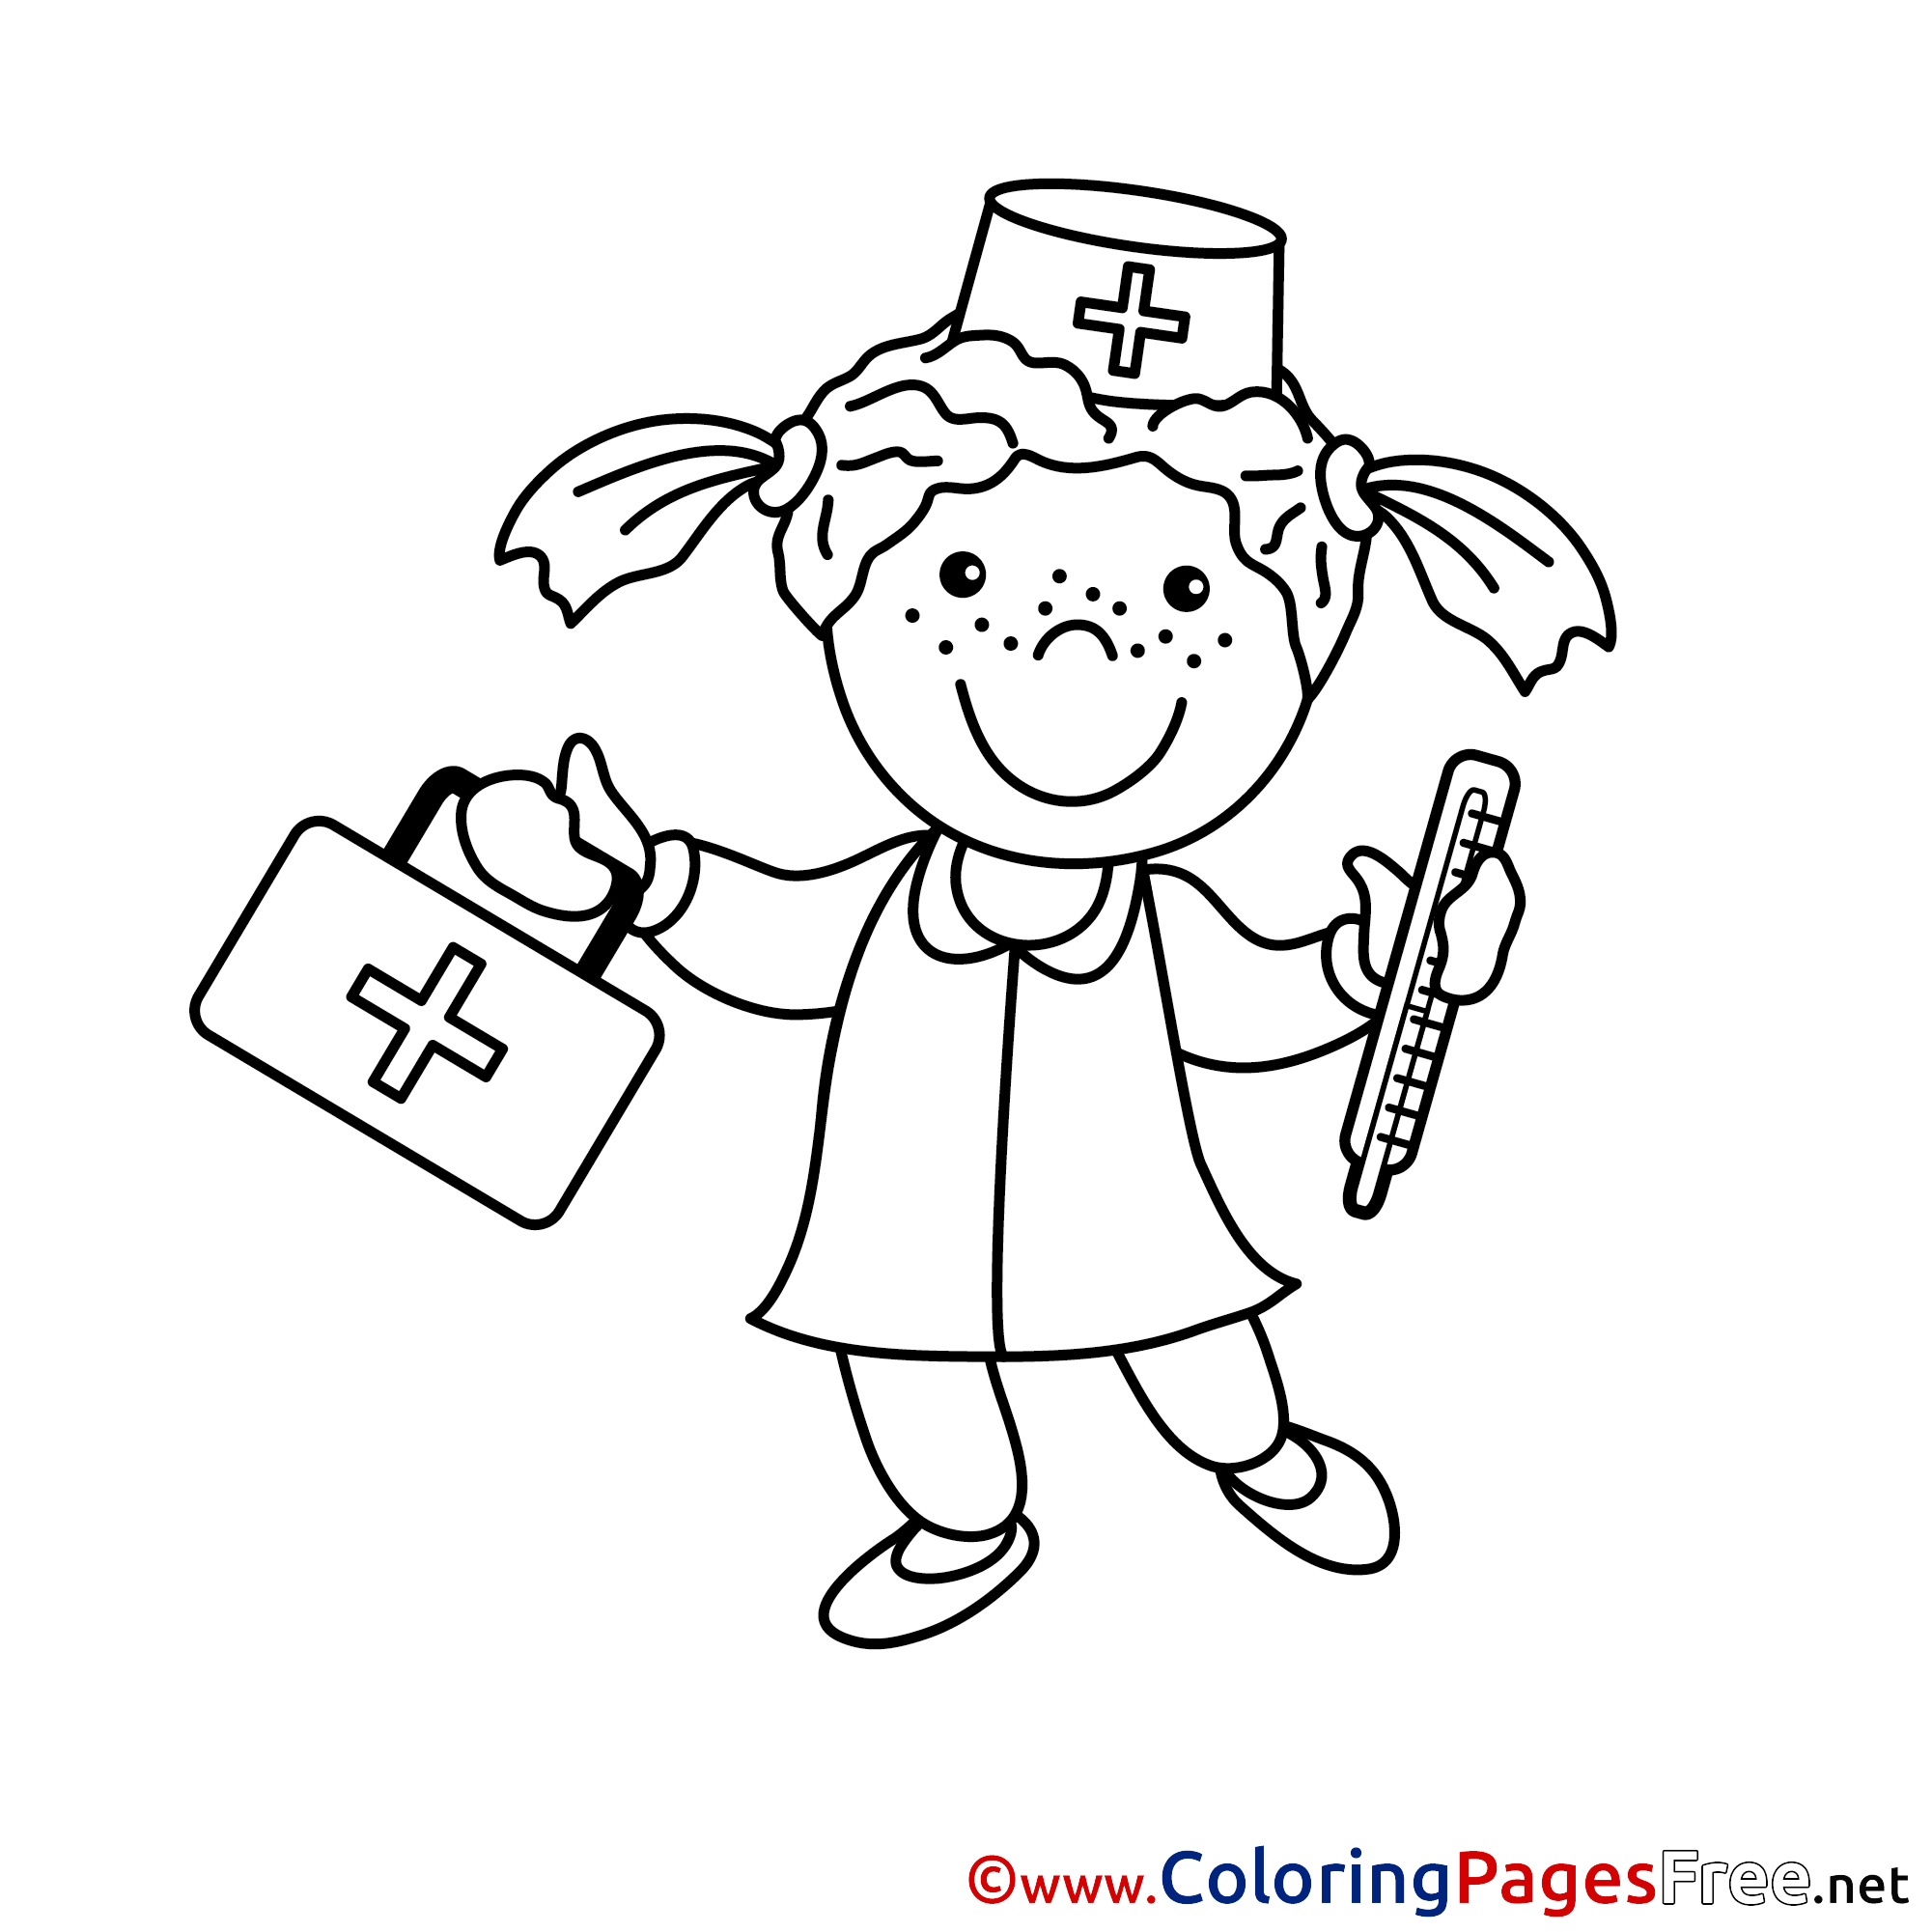 nurse coloring pages doctor coloring pages getcoloringpagescom nurse coloring pages